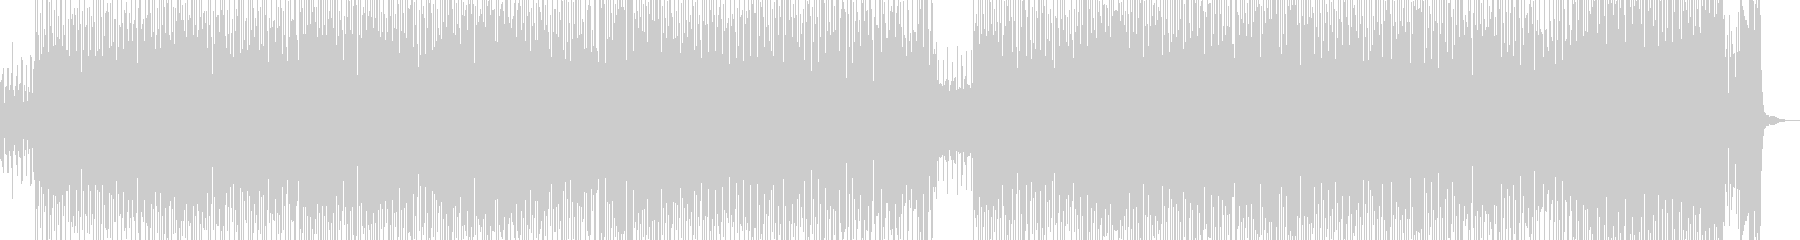 A fun country B that starts dancing unintentionally's unreproduced waveform